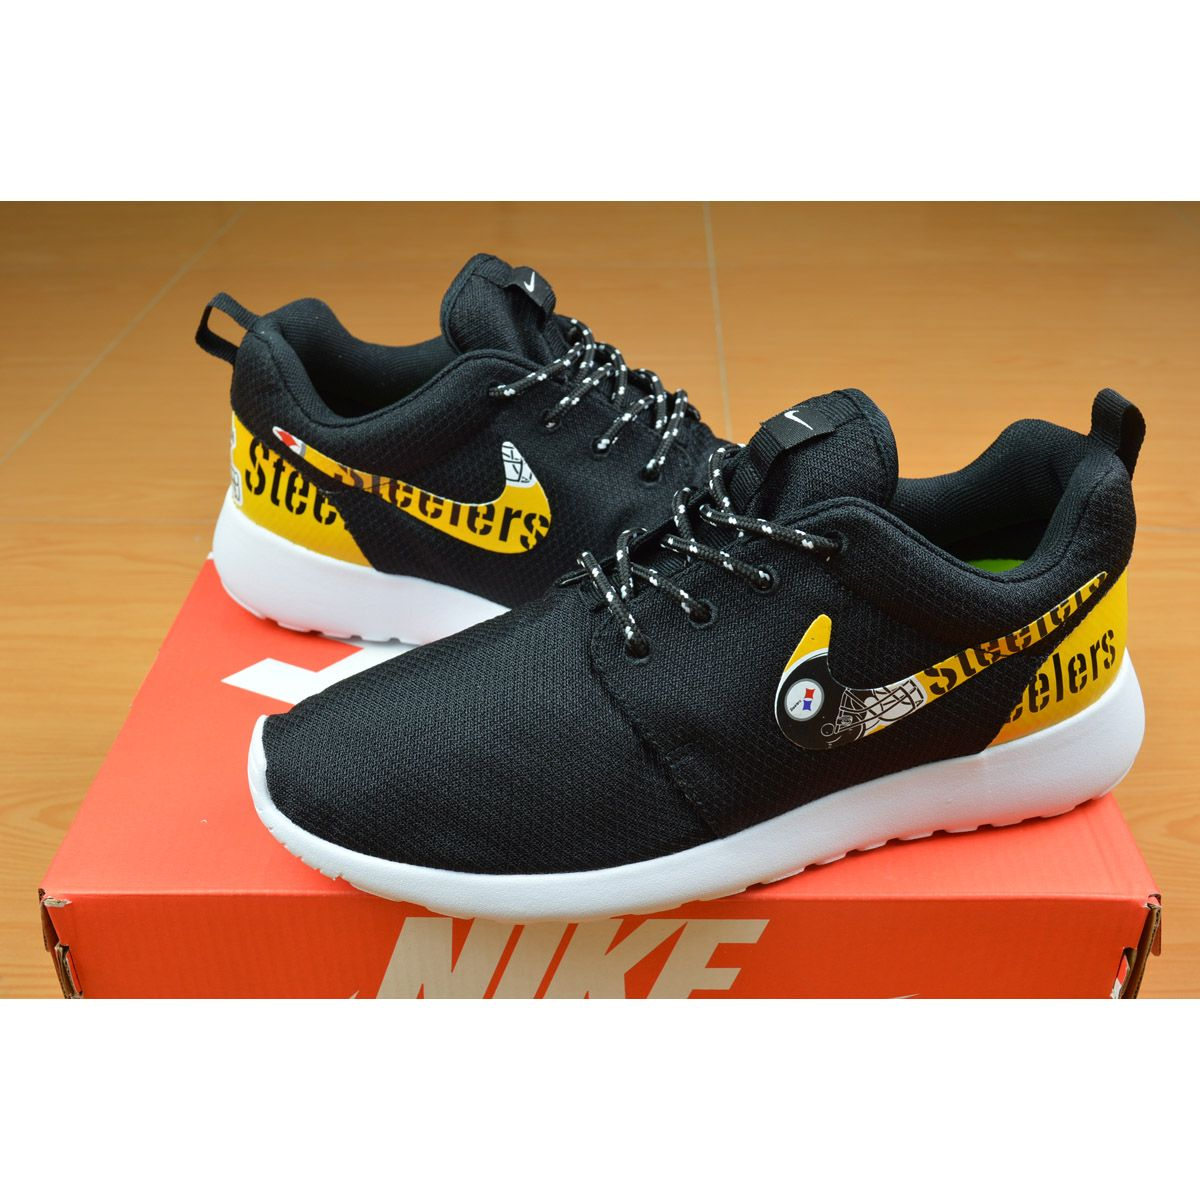 Fashion Shoes $21 on | Max's fashion | Pittsburgh steelers